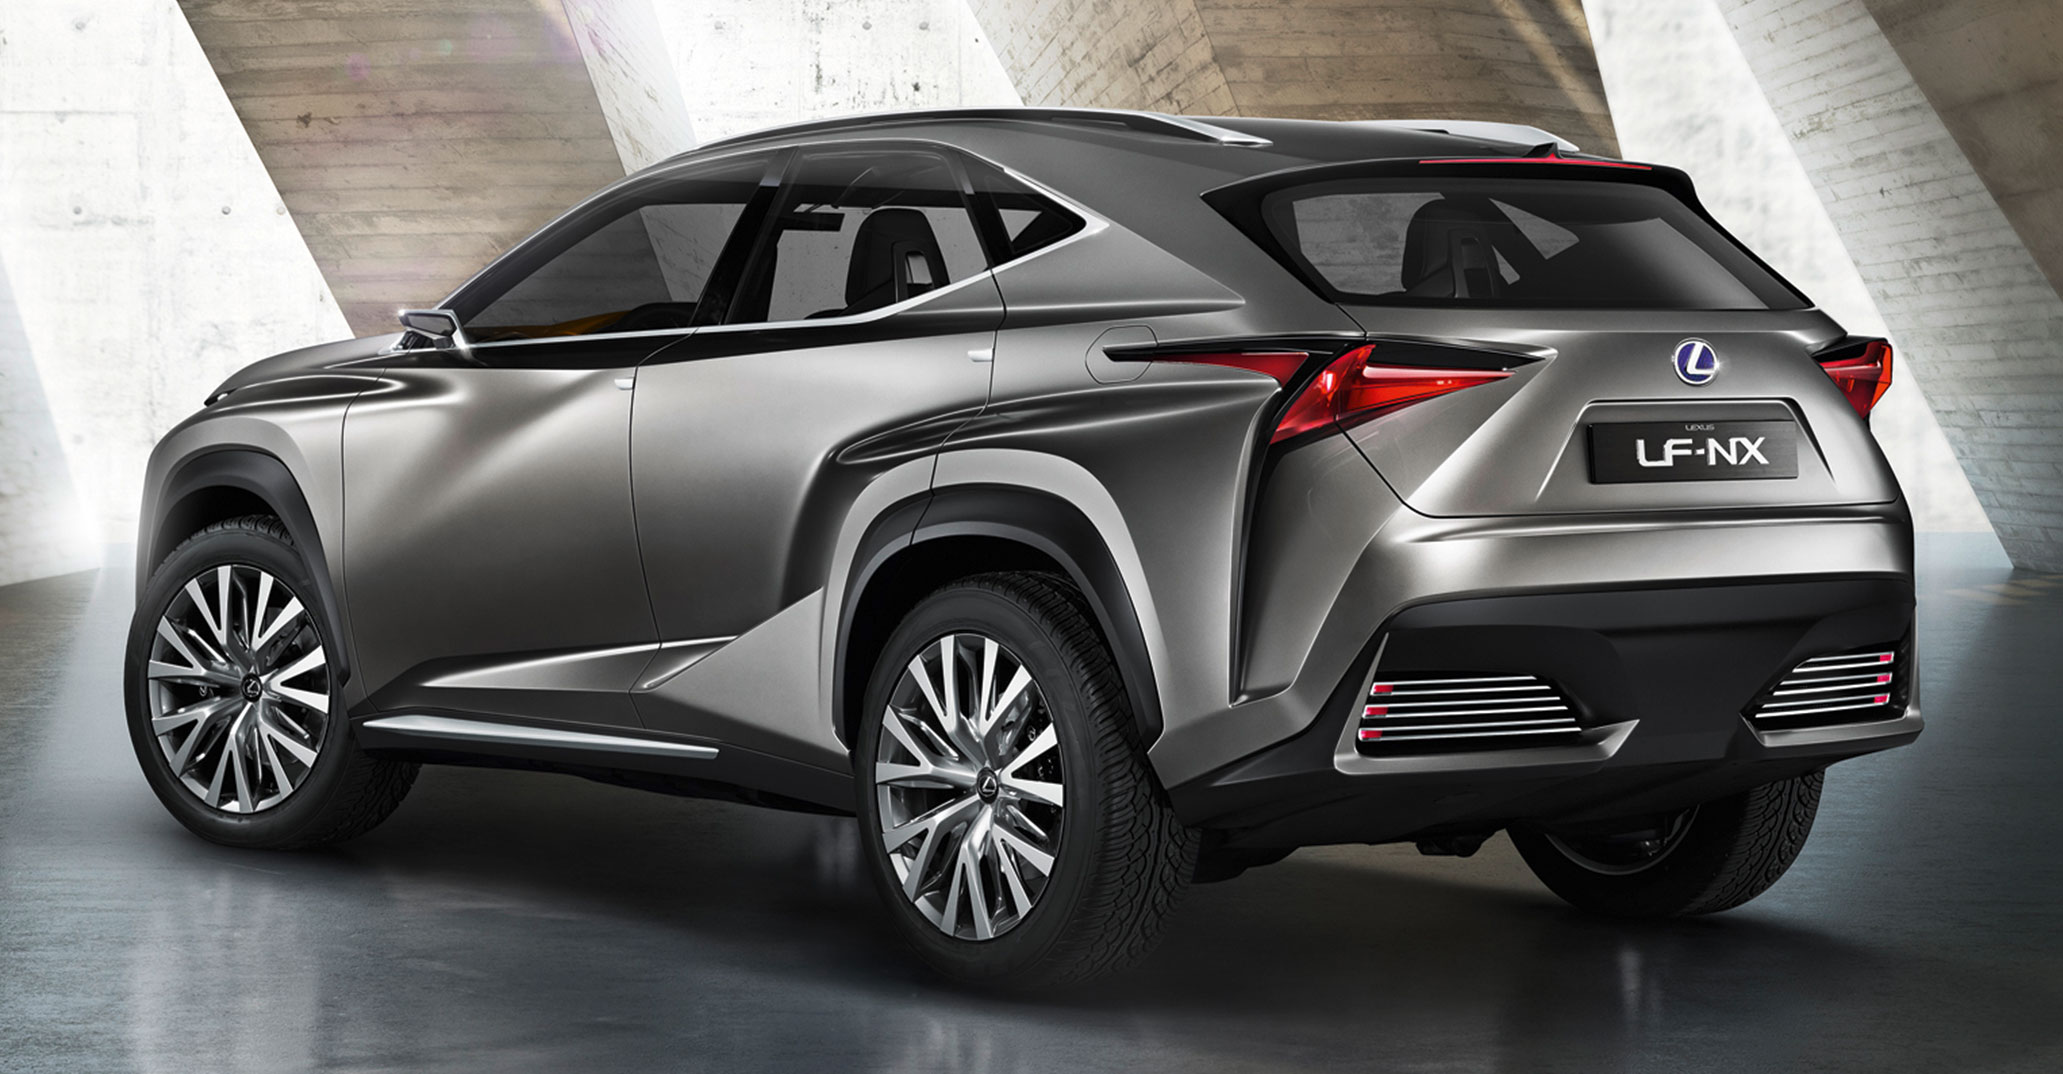 Lexus LF-NX previews upcoming compact SUV Image 196484